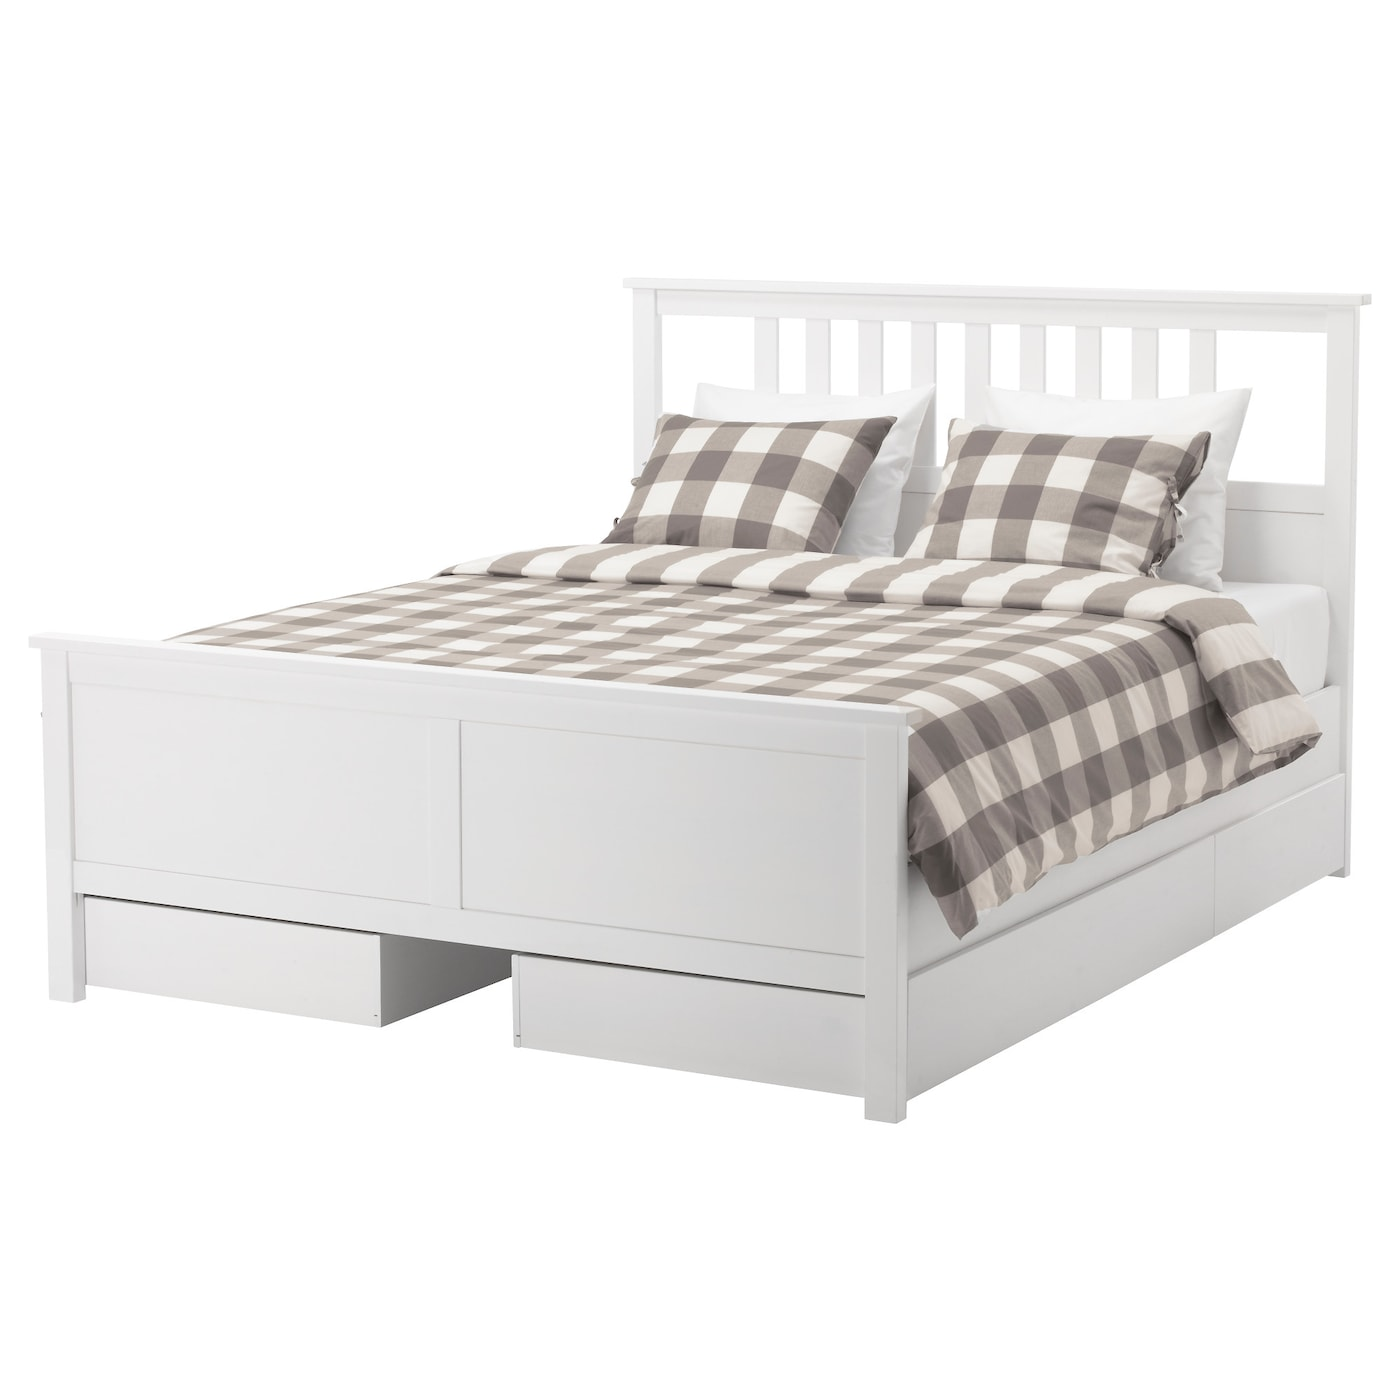 Hemnes bed frame with 4 storage boxes white stain lur y for Ikea malm bett 140x200 anleitung